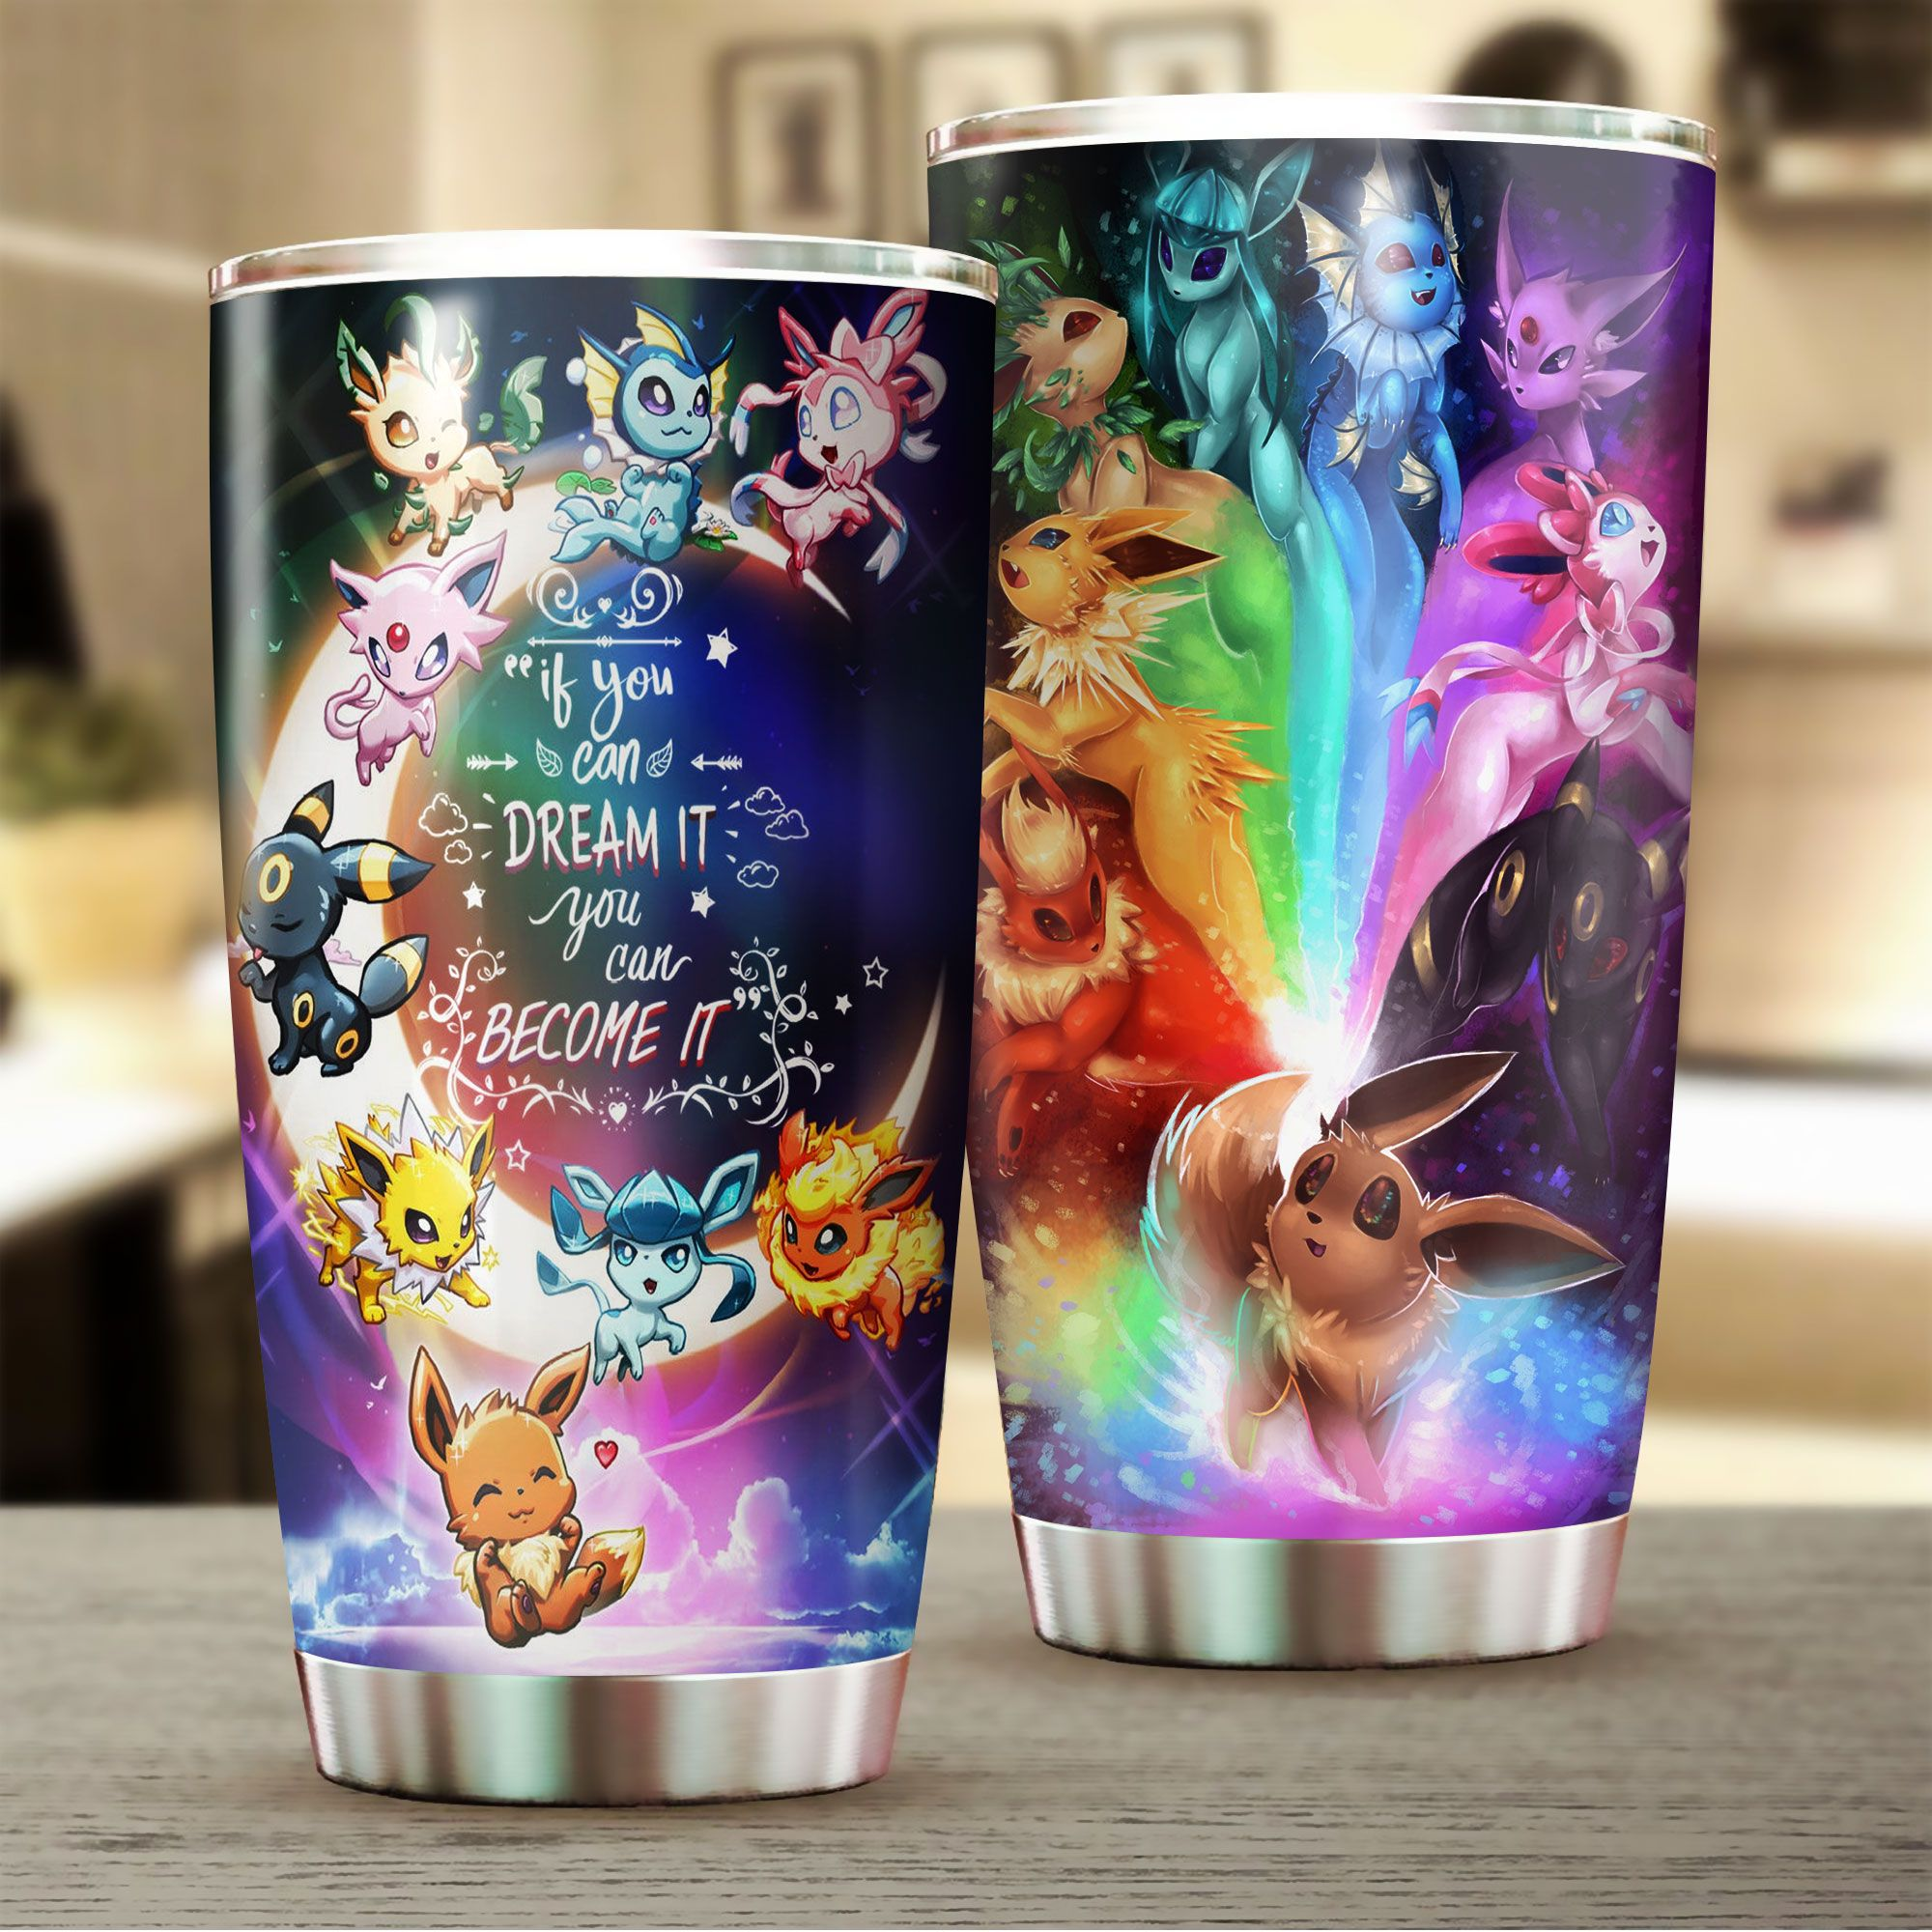 Eevee If you can dream it you can become it Tumbler Pokemon